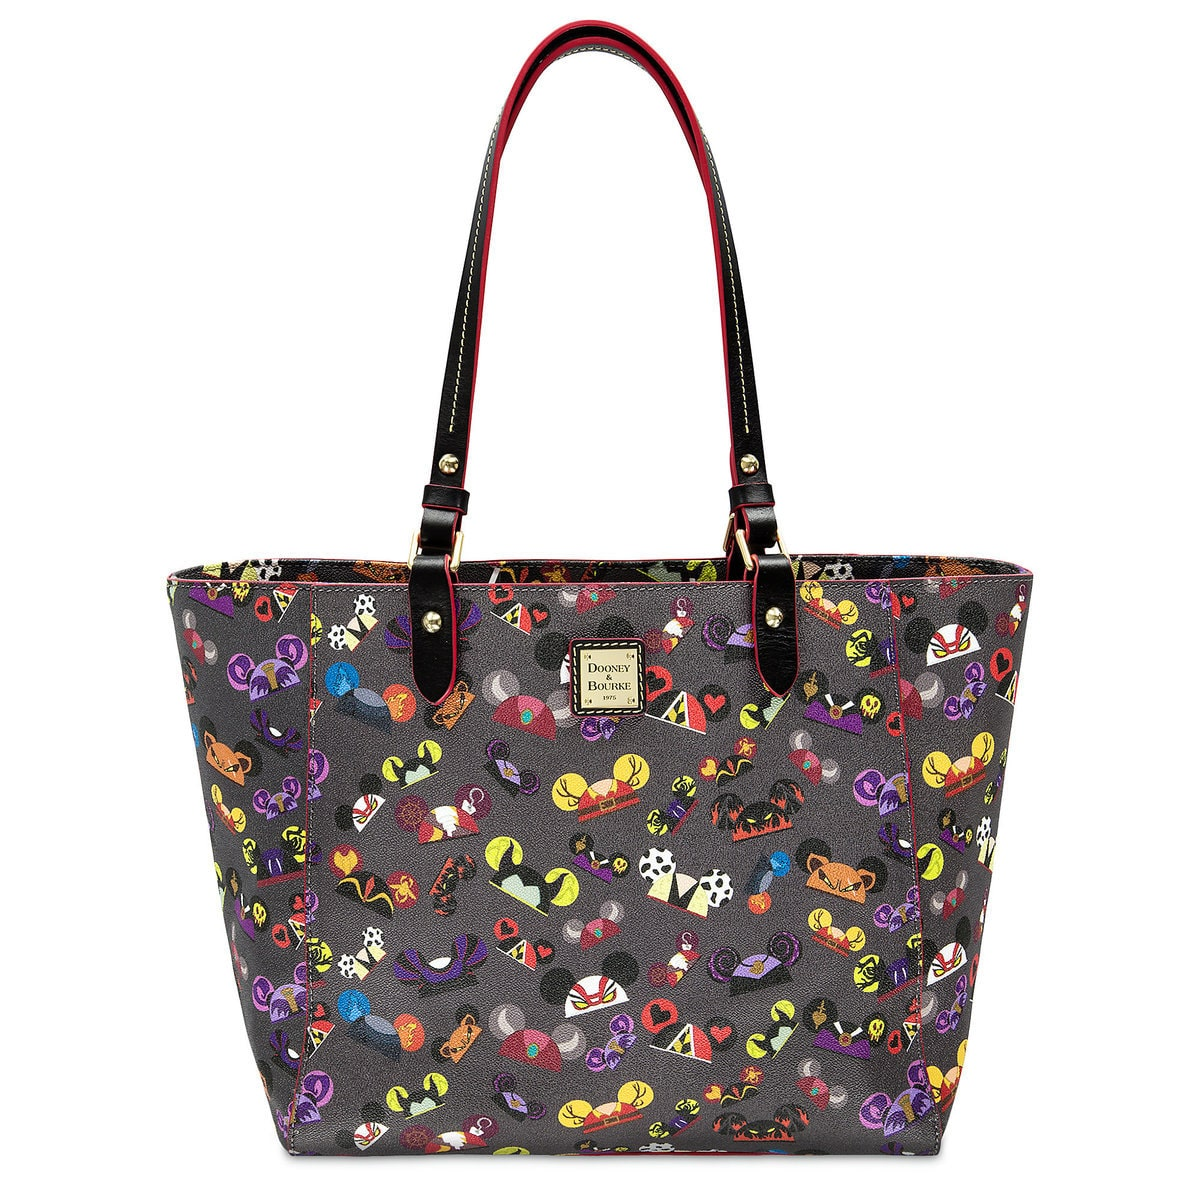 first rate 1a3be 57ab9 Product Image of Disney Villains Ear Hat Tote Bag by Dooney   Bourke   1